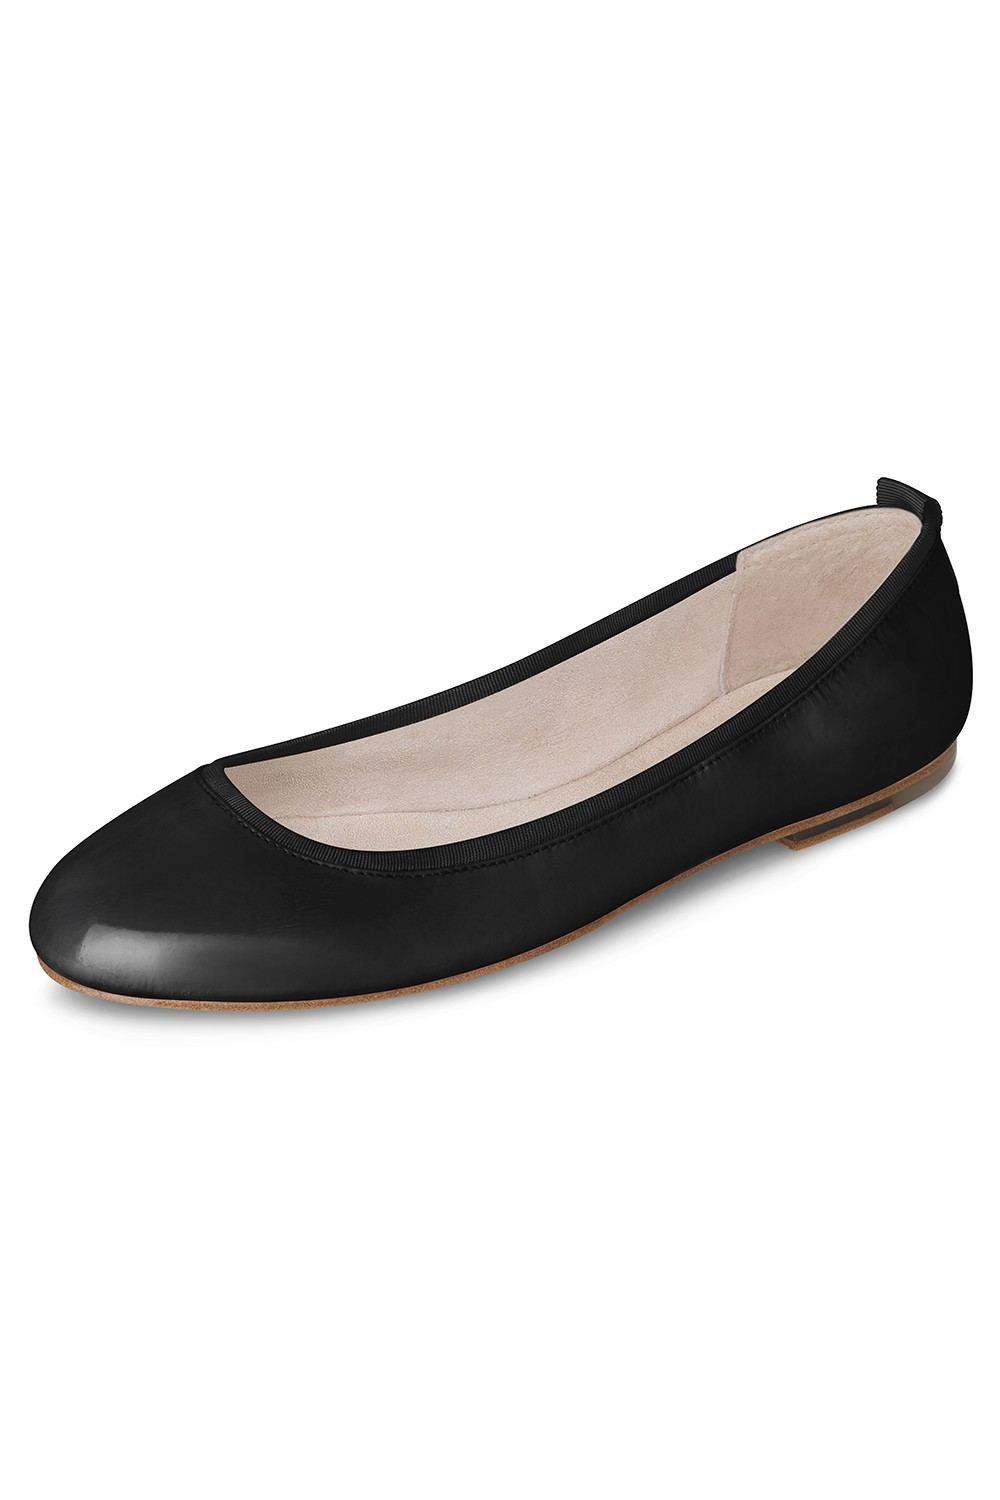 Shop for women's flats at Burkes Outlet for a wide selection of styles including loafers, oxfords, almond toe flats, pointy toe flats, comfort flats, ballet flats, and other flat shoes. We carry top brand names and the latest styles and trends in women's shoes.